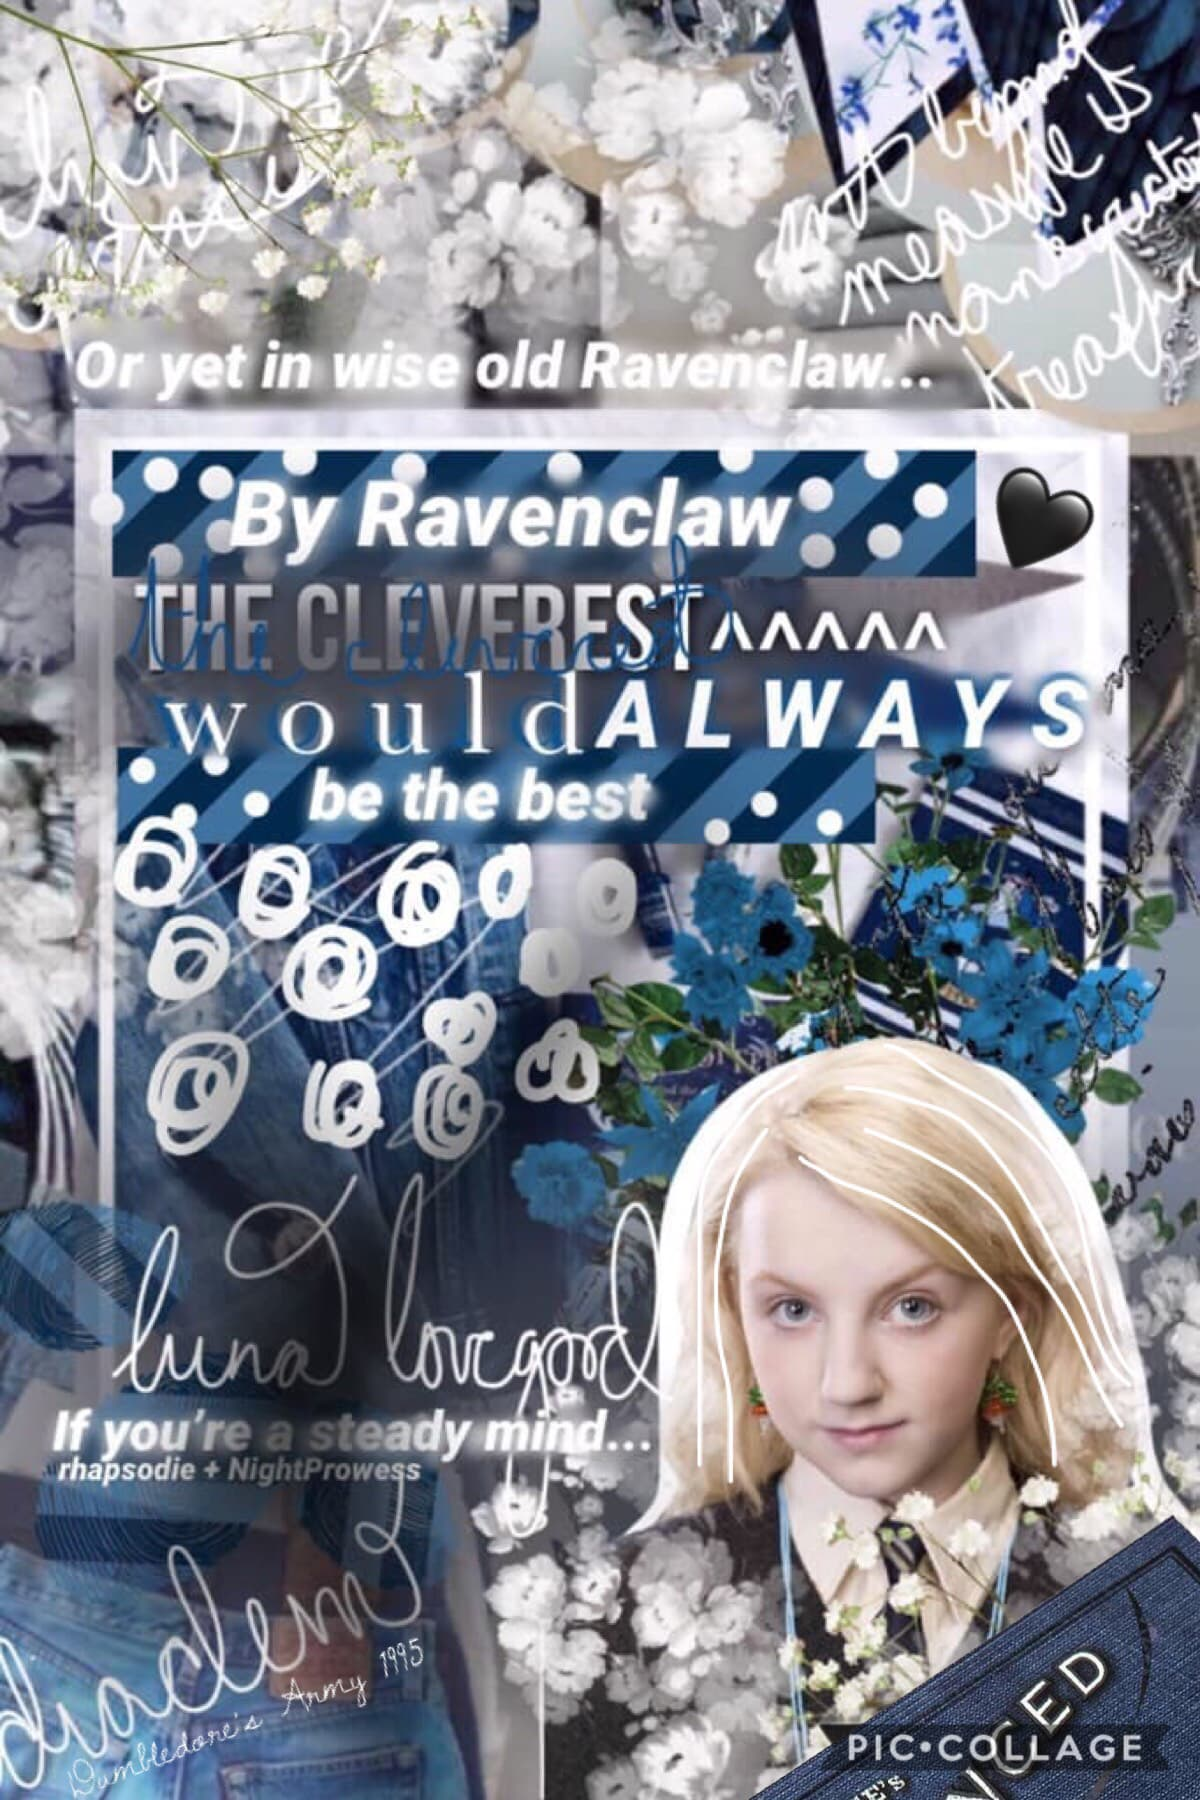 ⚡️💙•Tap•💙⚡️ It's been like two weeks since I last posted oof😂 ✨🖤• COLLAB WITH THE AMAZING RHAPSODIE•🖤✨ Fun Fact: I used to be a Ravenclaw, but now I've definitely shifted towards Gryffindor or Slytherin. Happy Mother's Day to all the mothers out there💜 🔥N